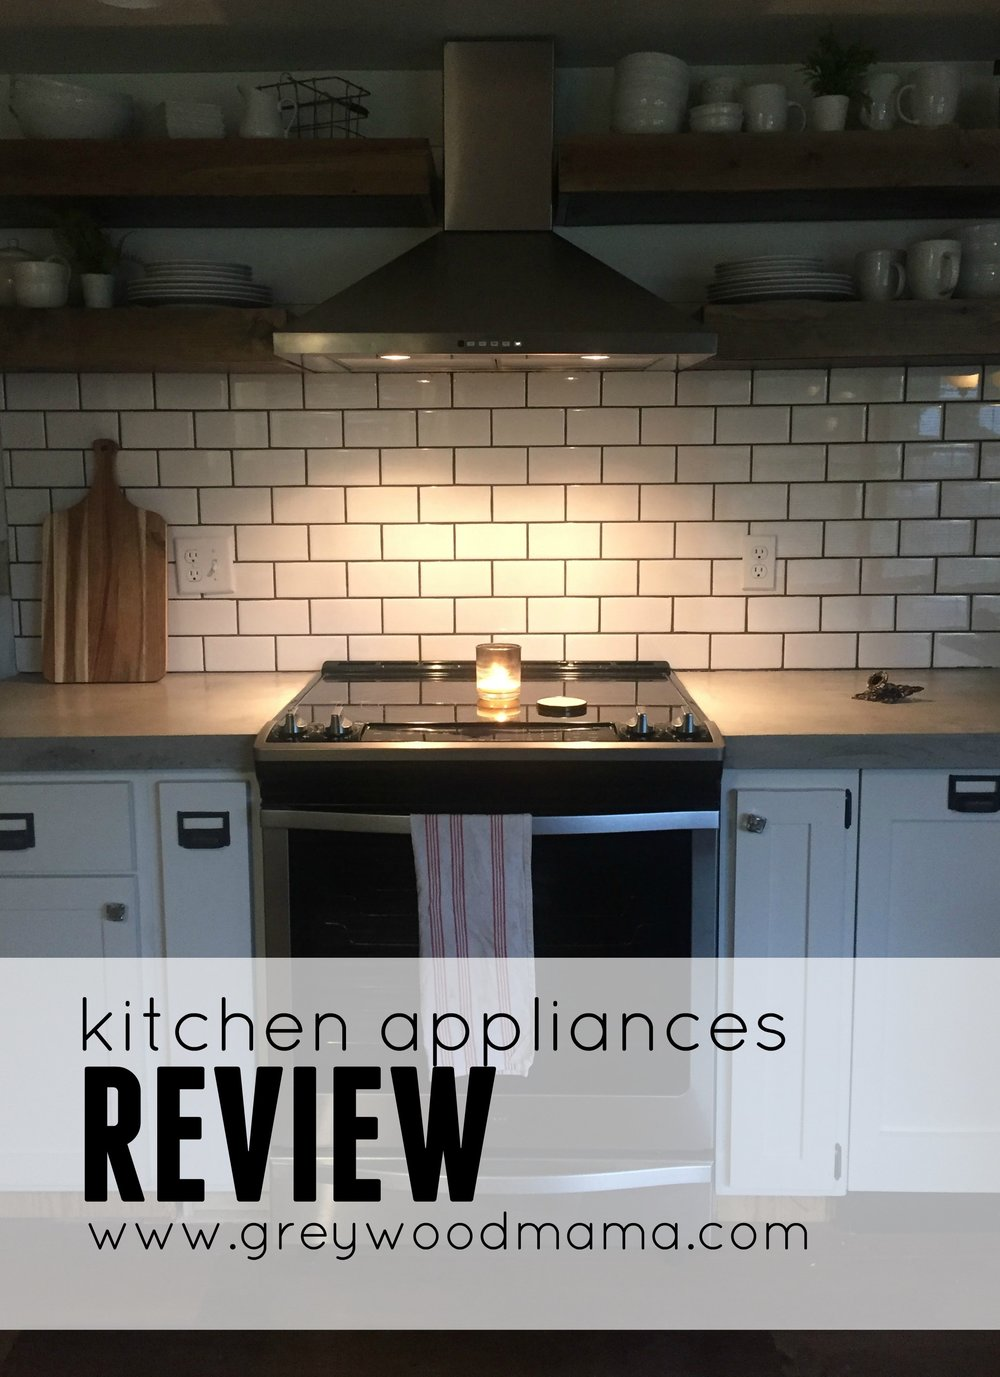 kitchen-appliances-review.jpg